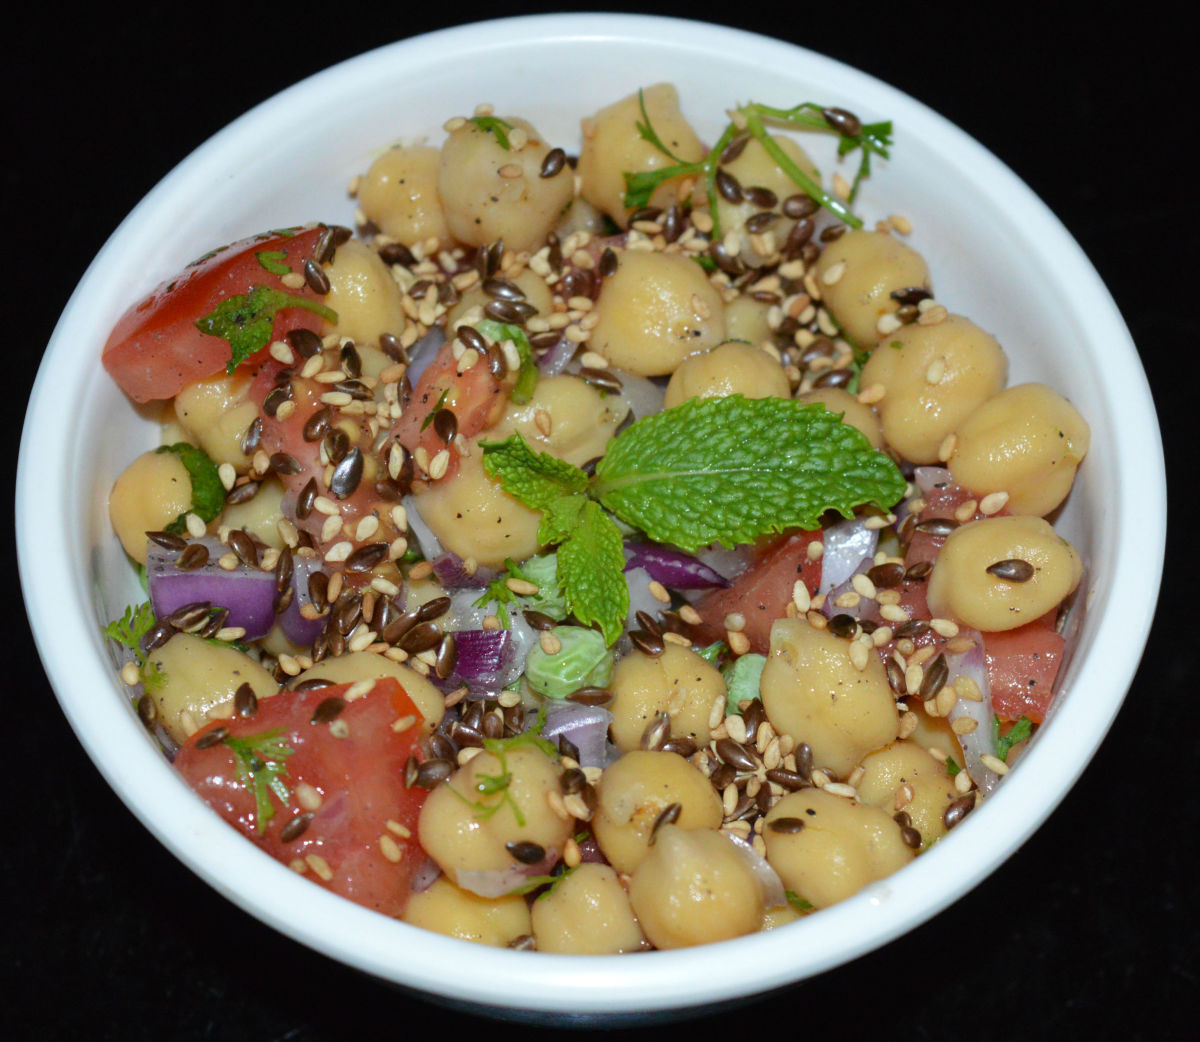 Chickpea Salad With Roasted Flax Seed and Sesame Seed